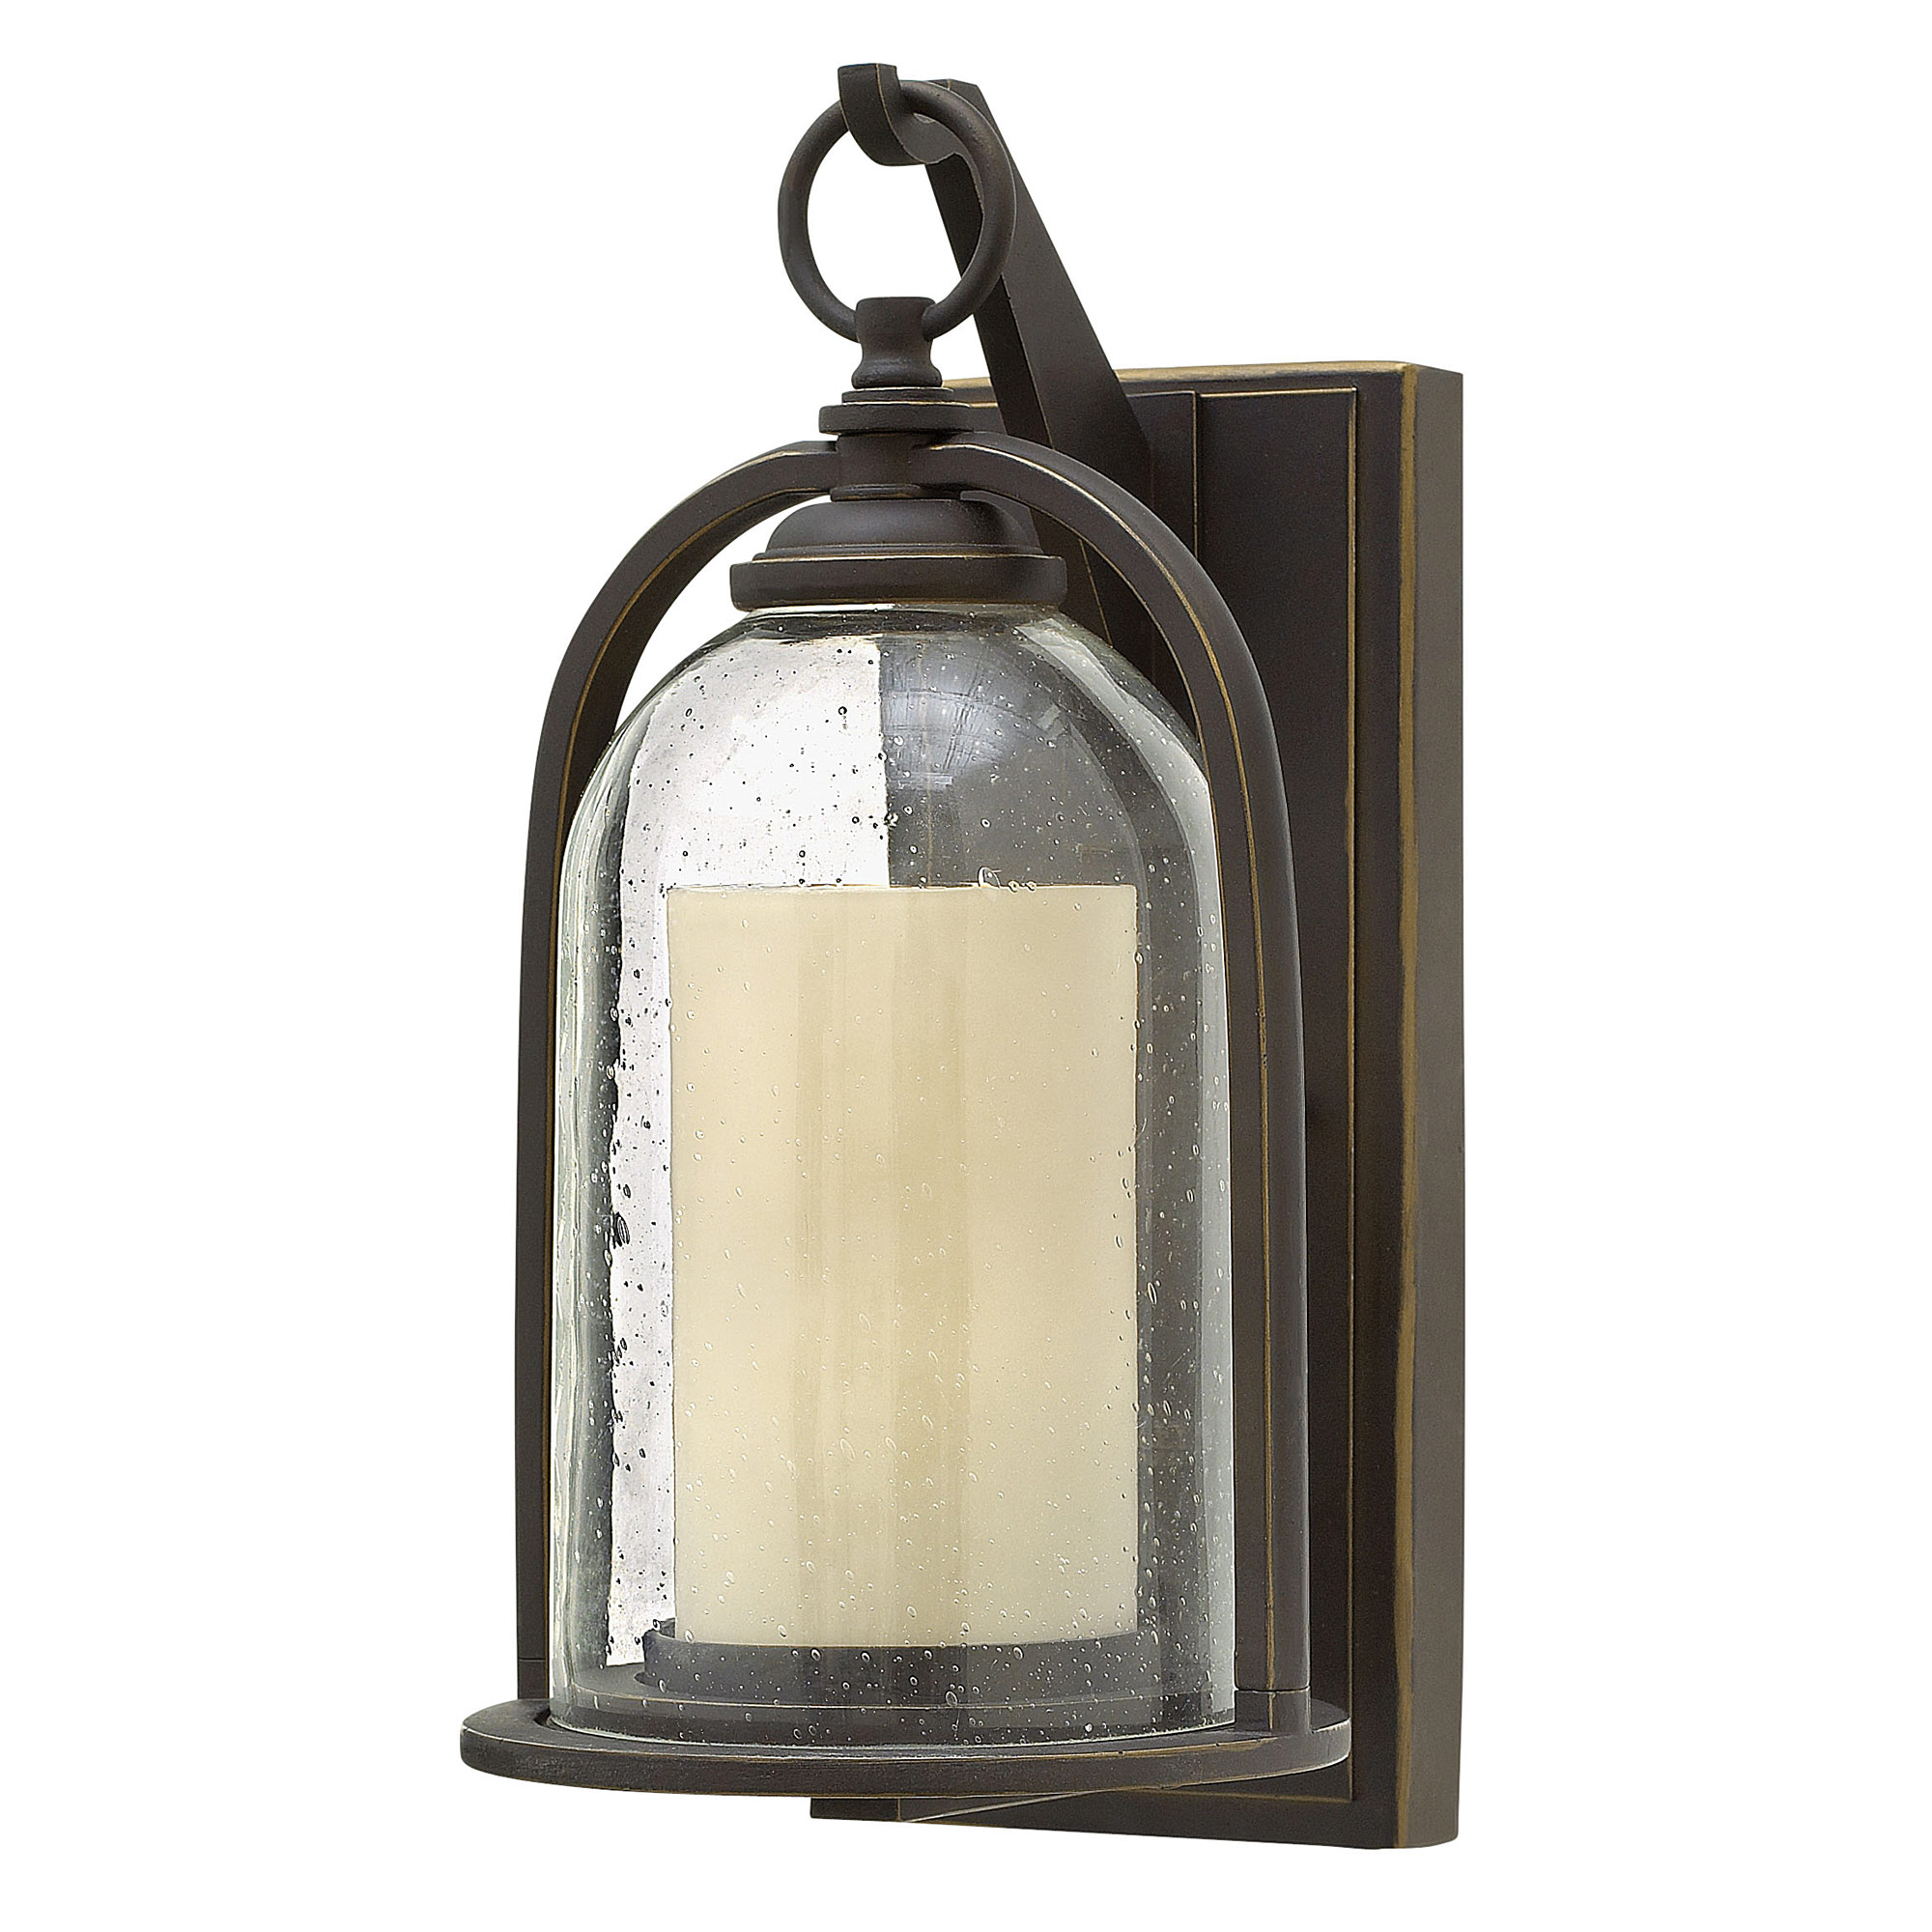 Quincy Outdoor Wall Light by Hinkley